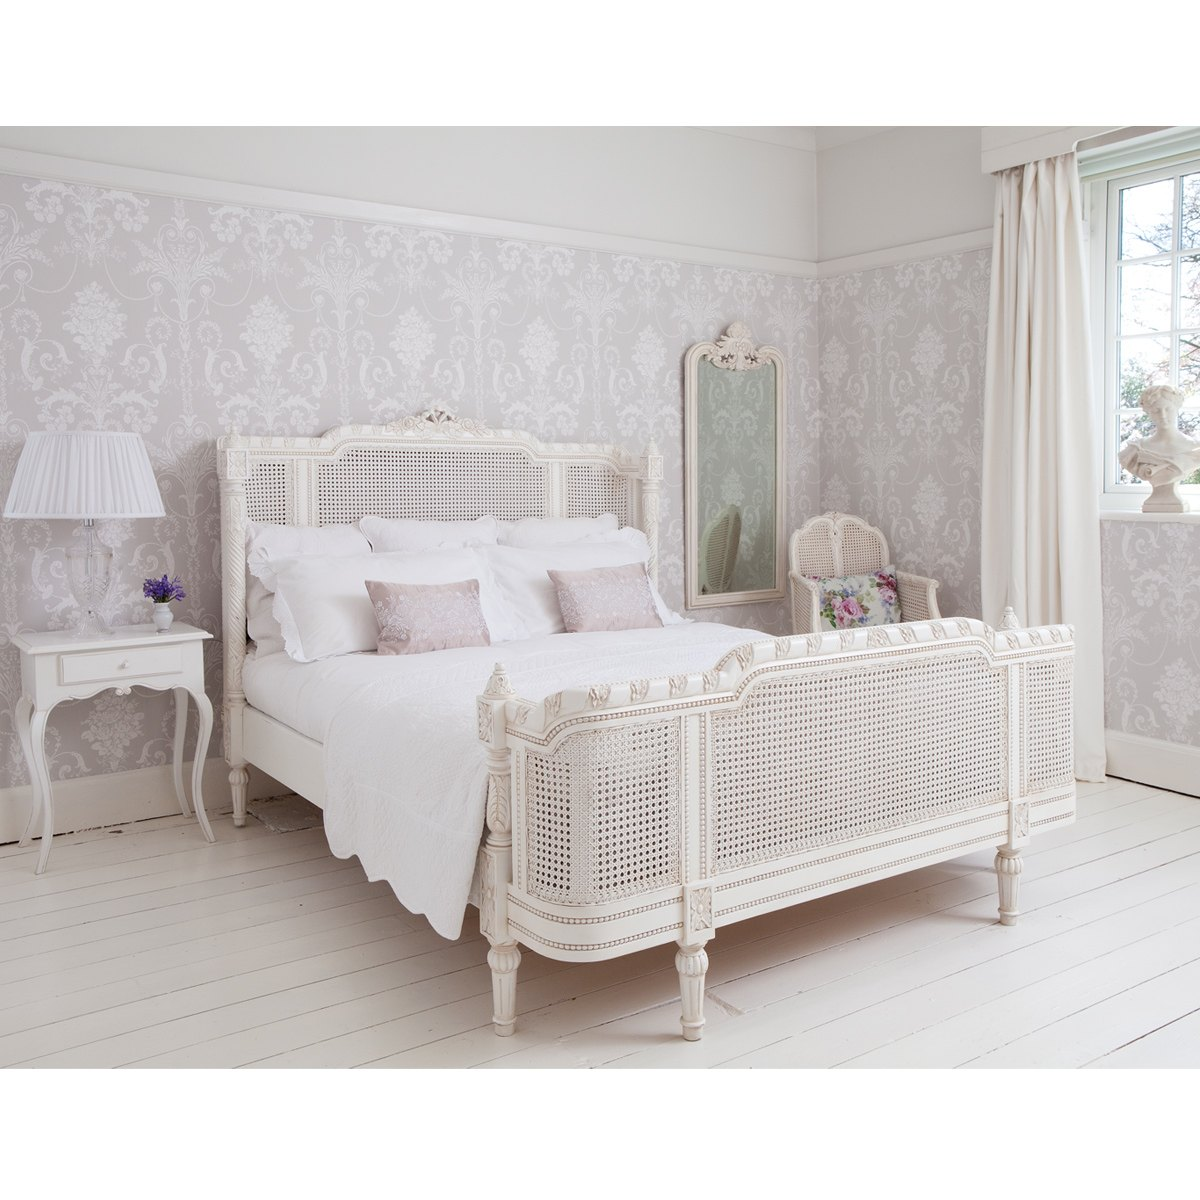 provencal lit lit painted french bed french bedroom company. Black Bedroom Furniture Sets. Home Design Ideas